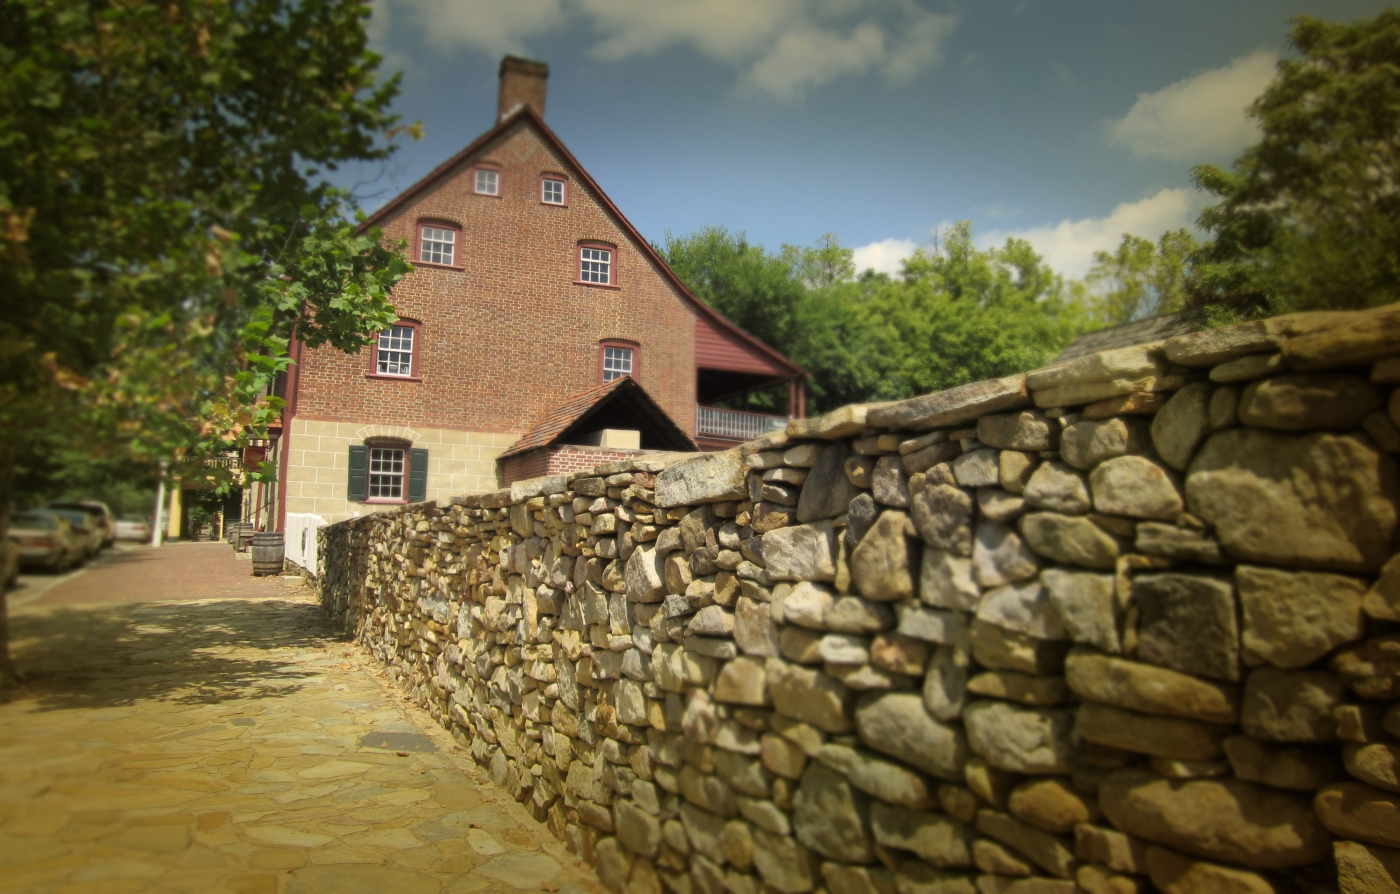 Travel back in time at Old Salem, a restored 18th century town. This historic attraction features Moravian culture and art, gardens and hands-on demonstrations.